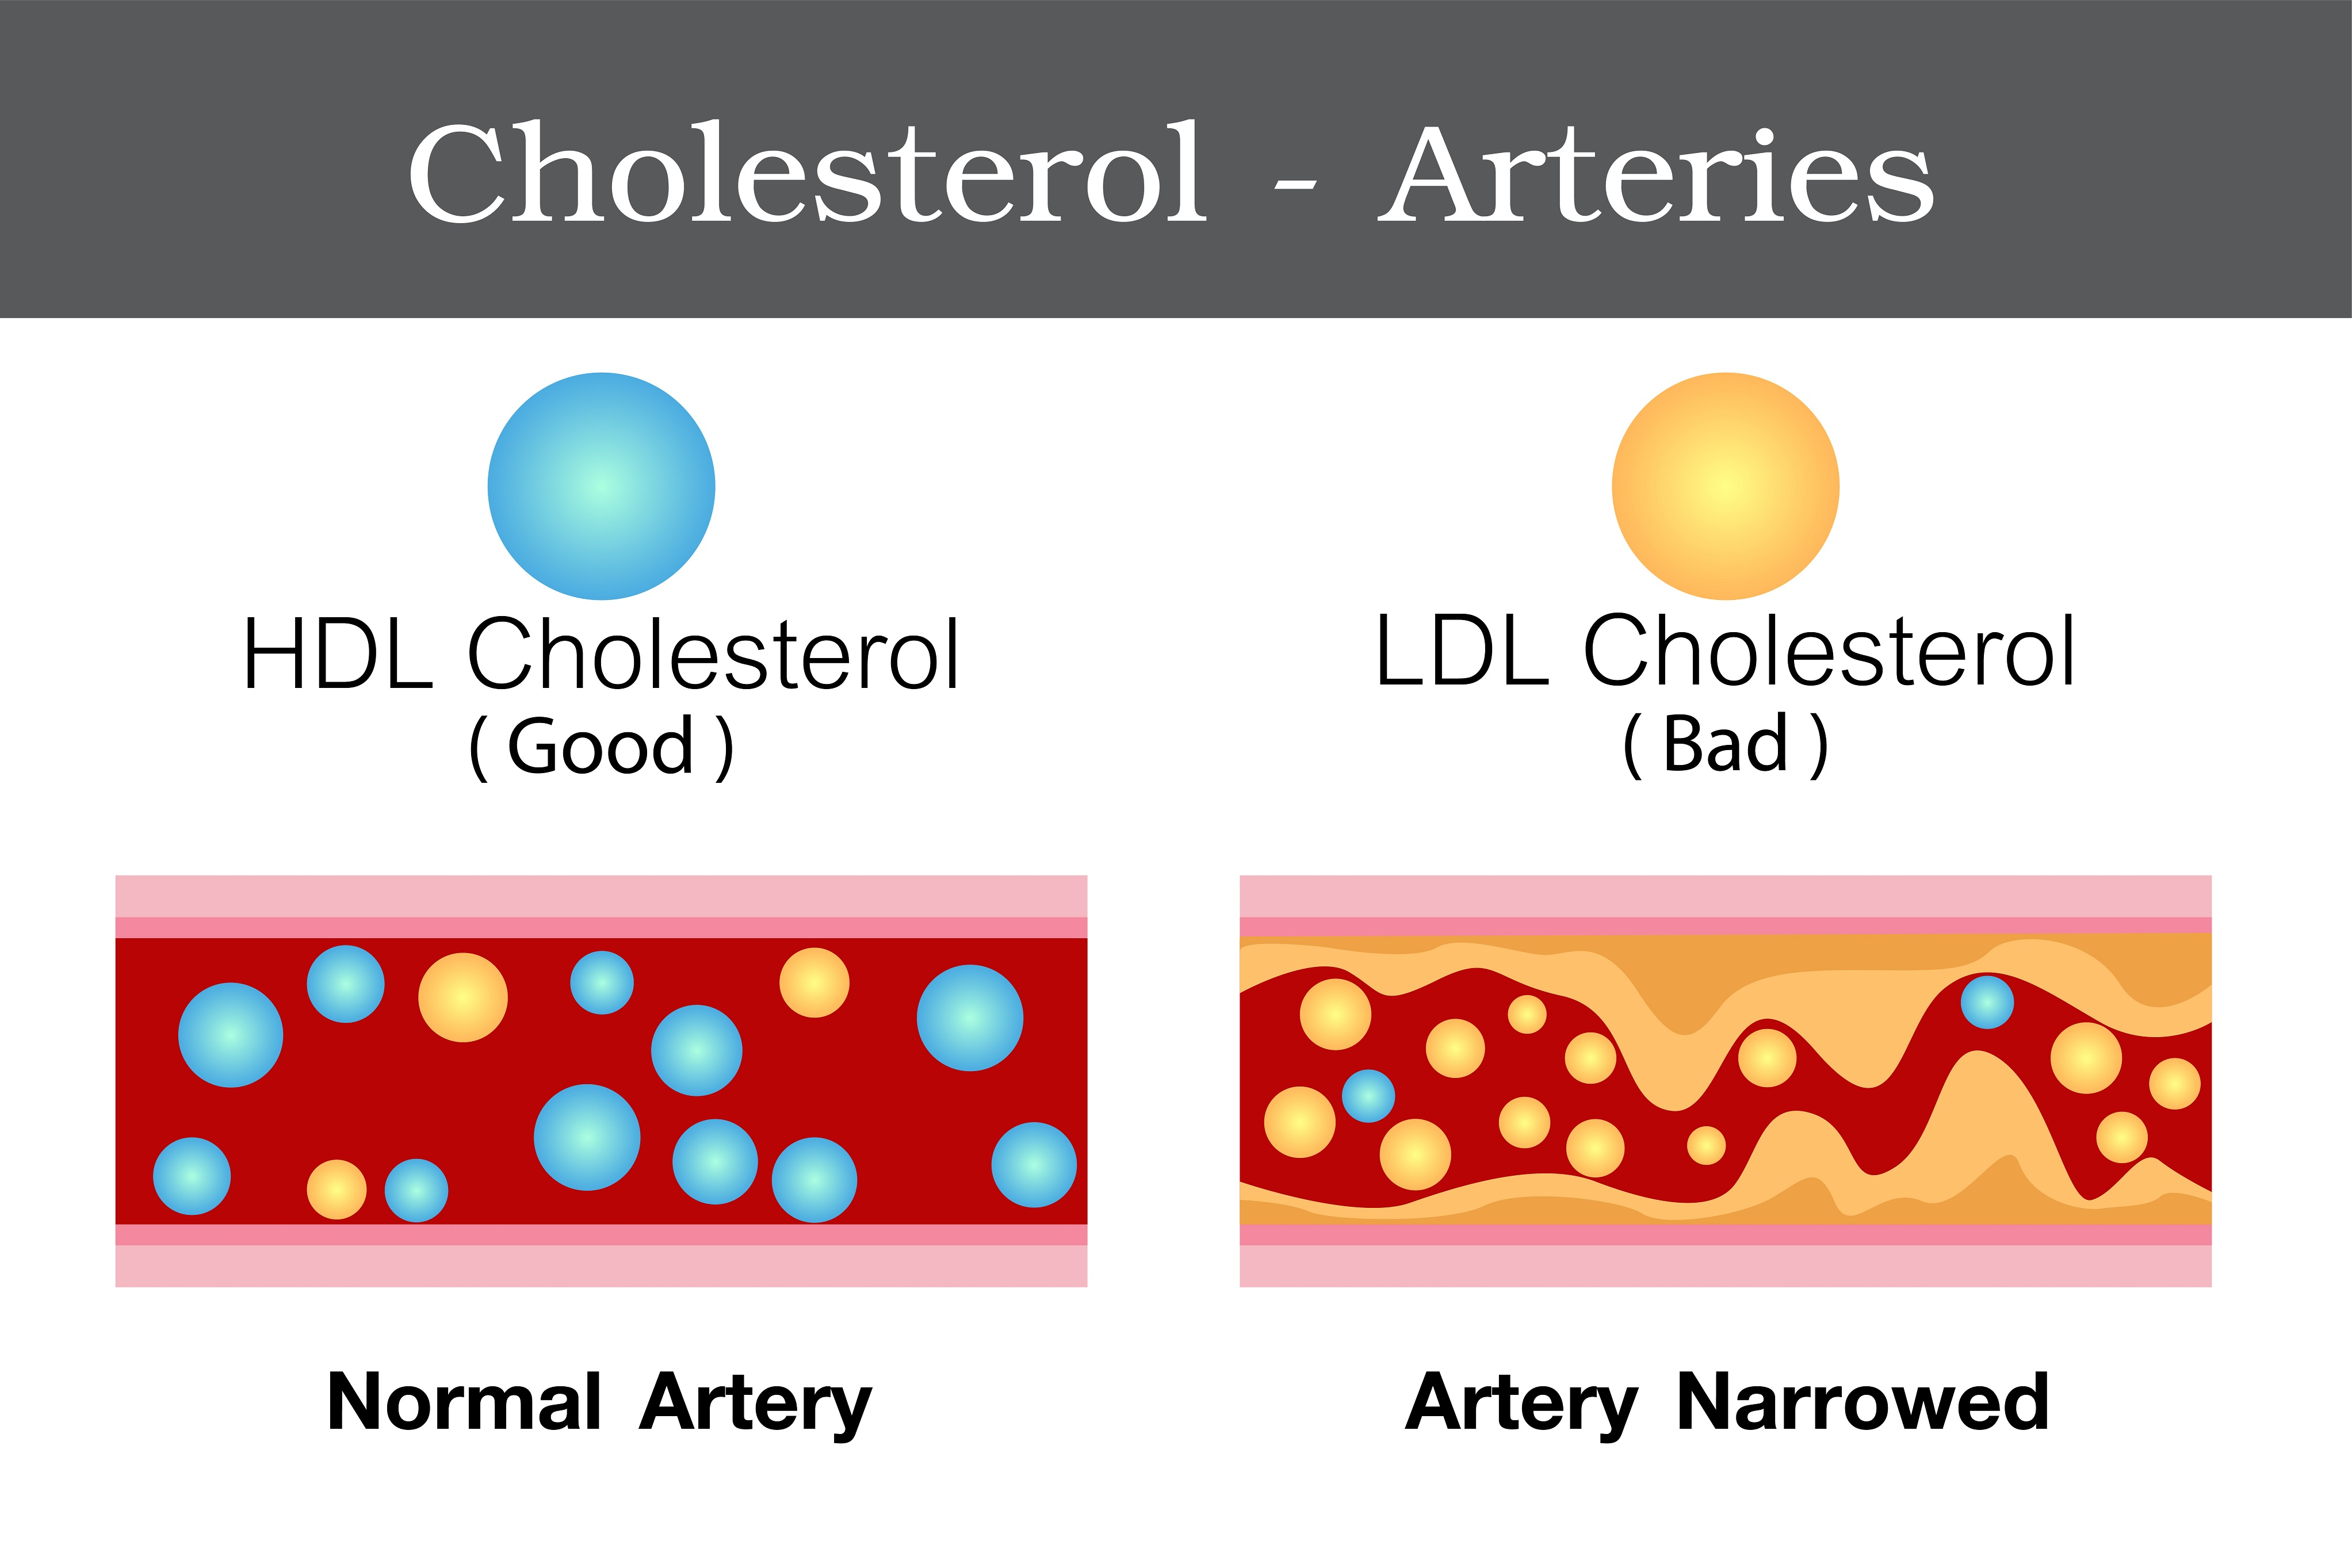 How different fractions of cholesterol acts on our arteries?